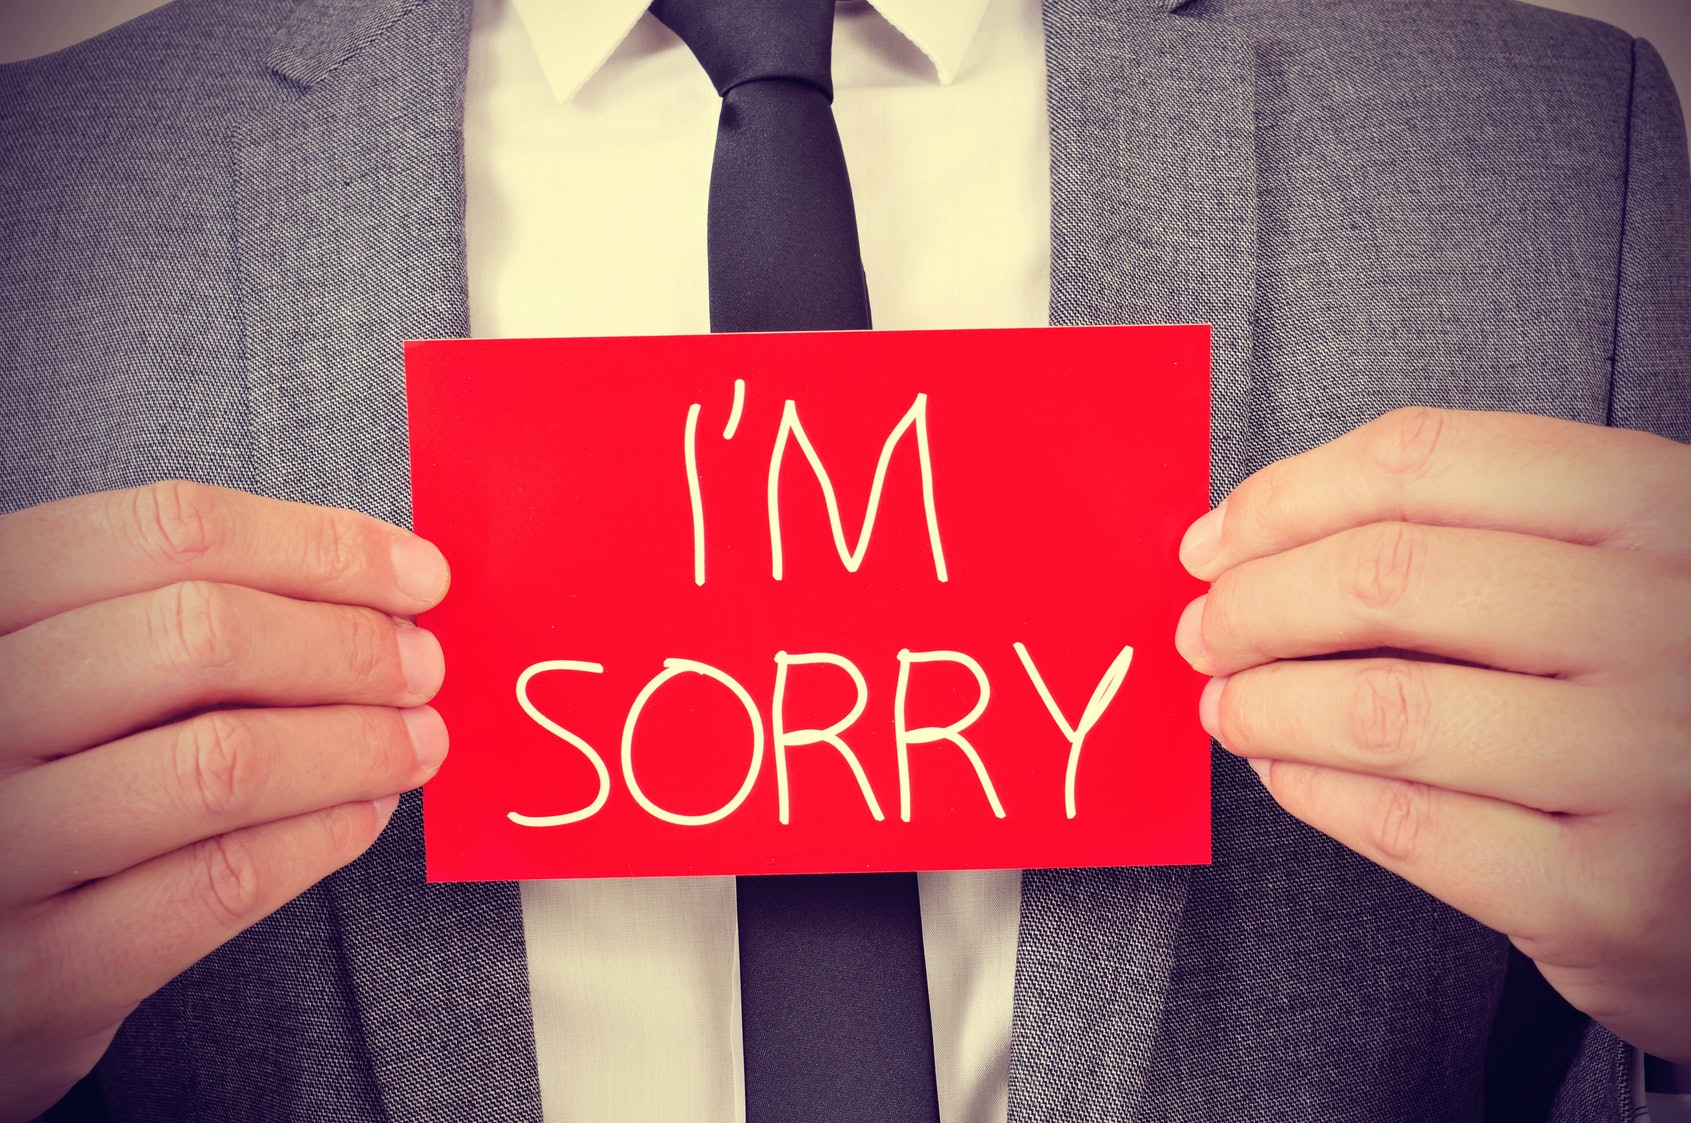 Are You Quick To Apologize? New Research Shows Which Personality Types Are  More Likely To Say Sorry